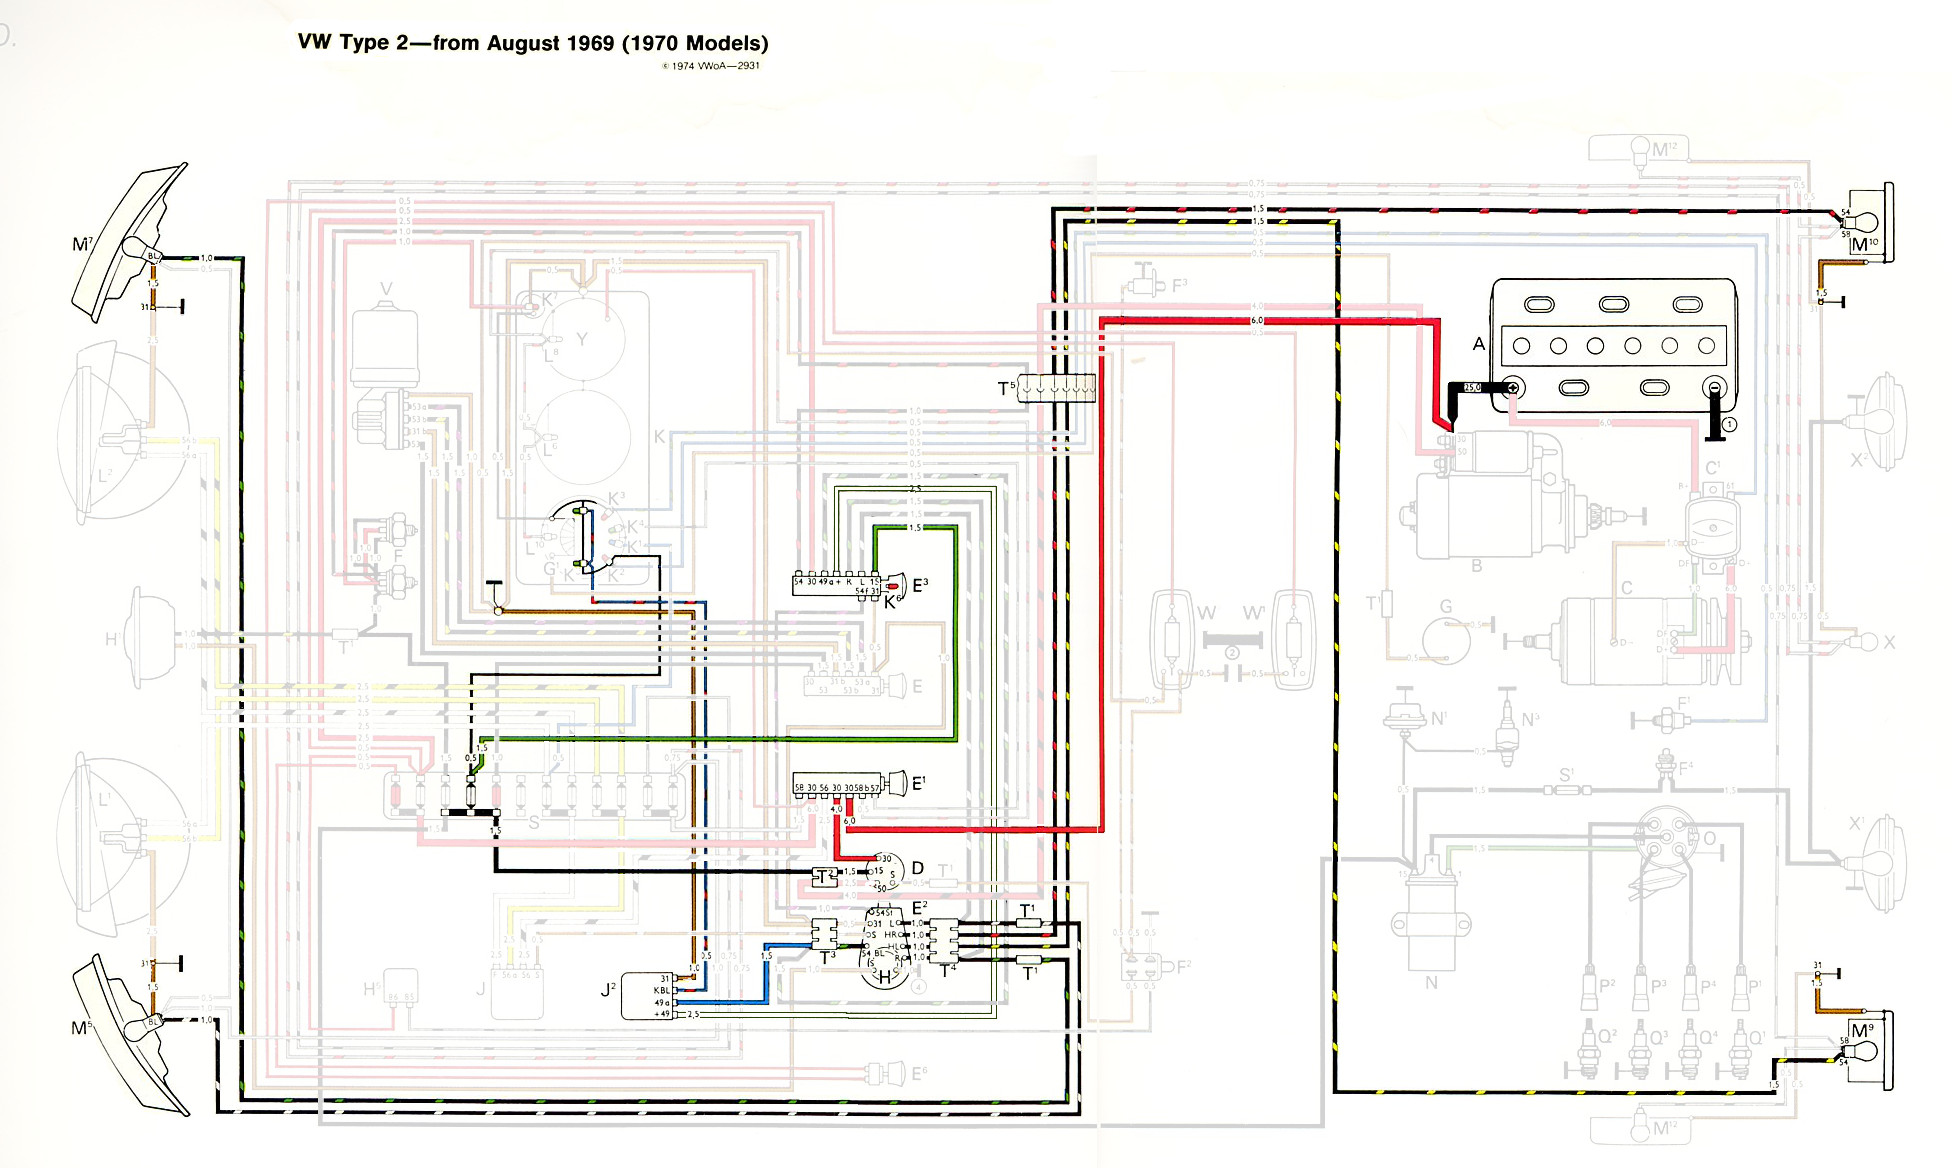 Type 2 Wiring Diagrams 1970 Camaro Diagram Haynes